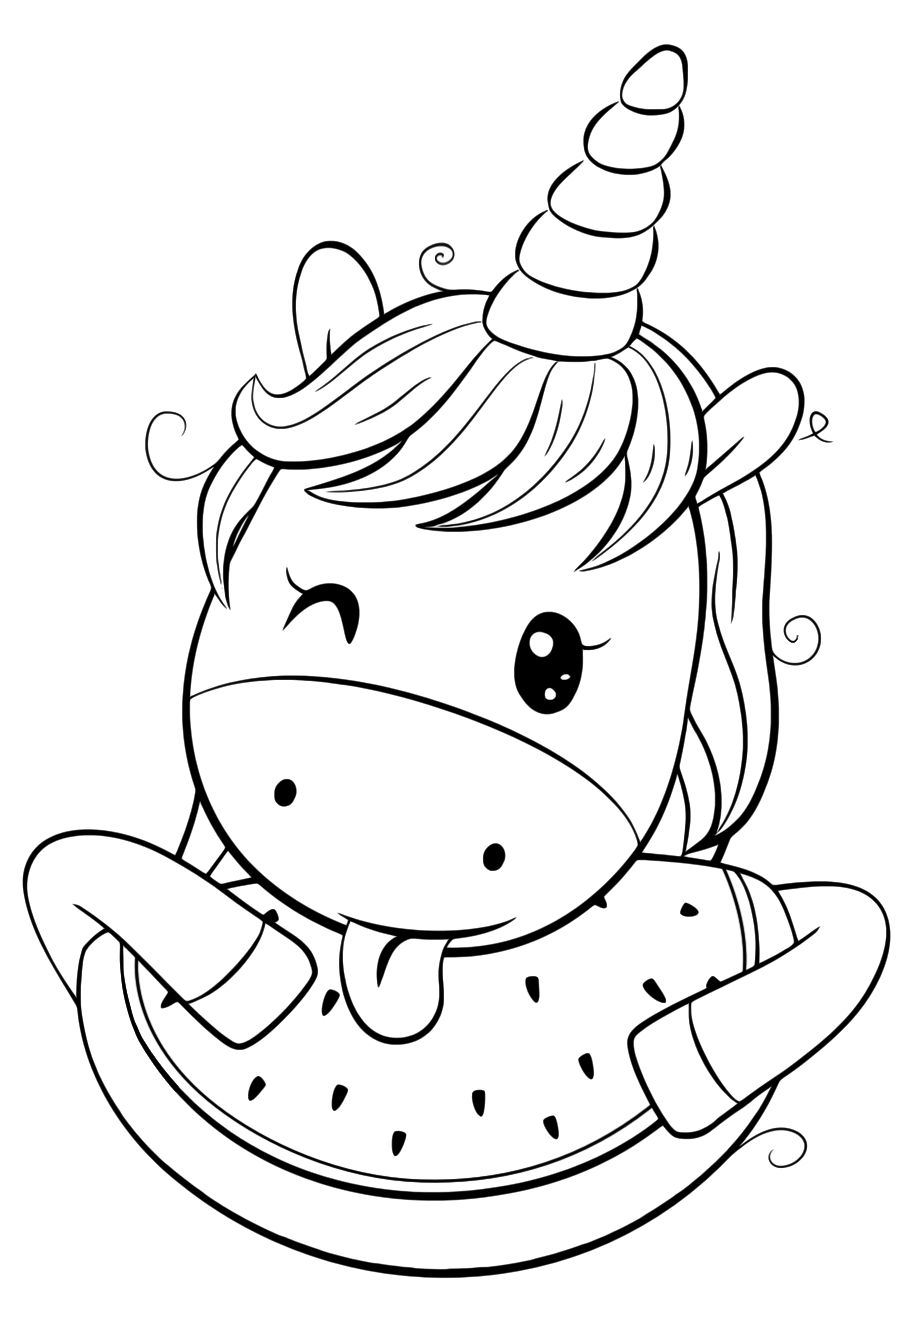 You know what's gonna cheer you up? Coloring pictures with